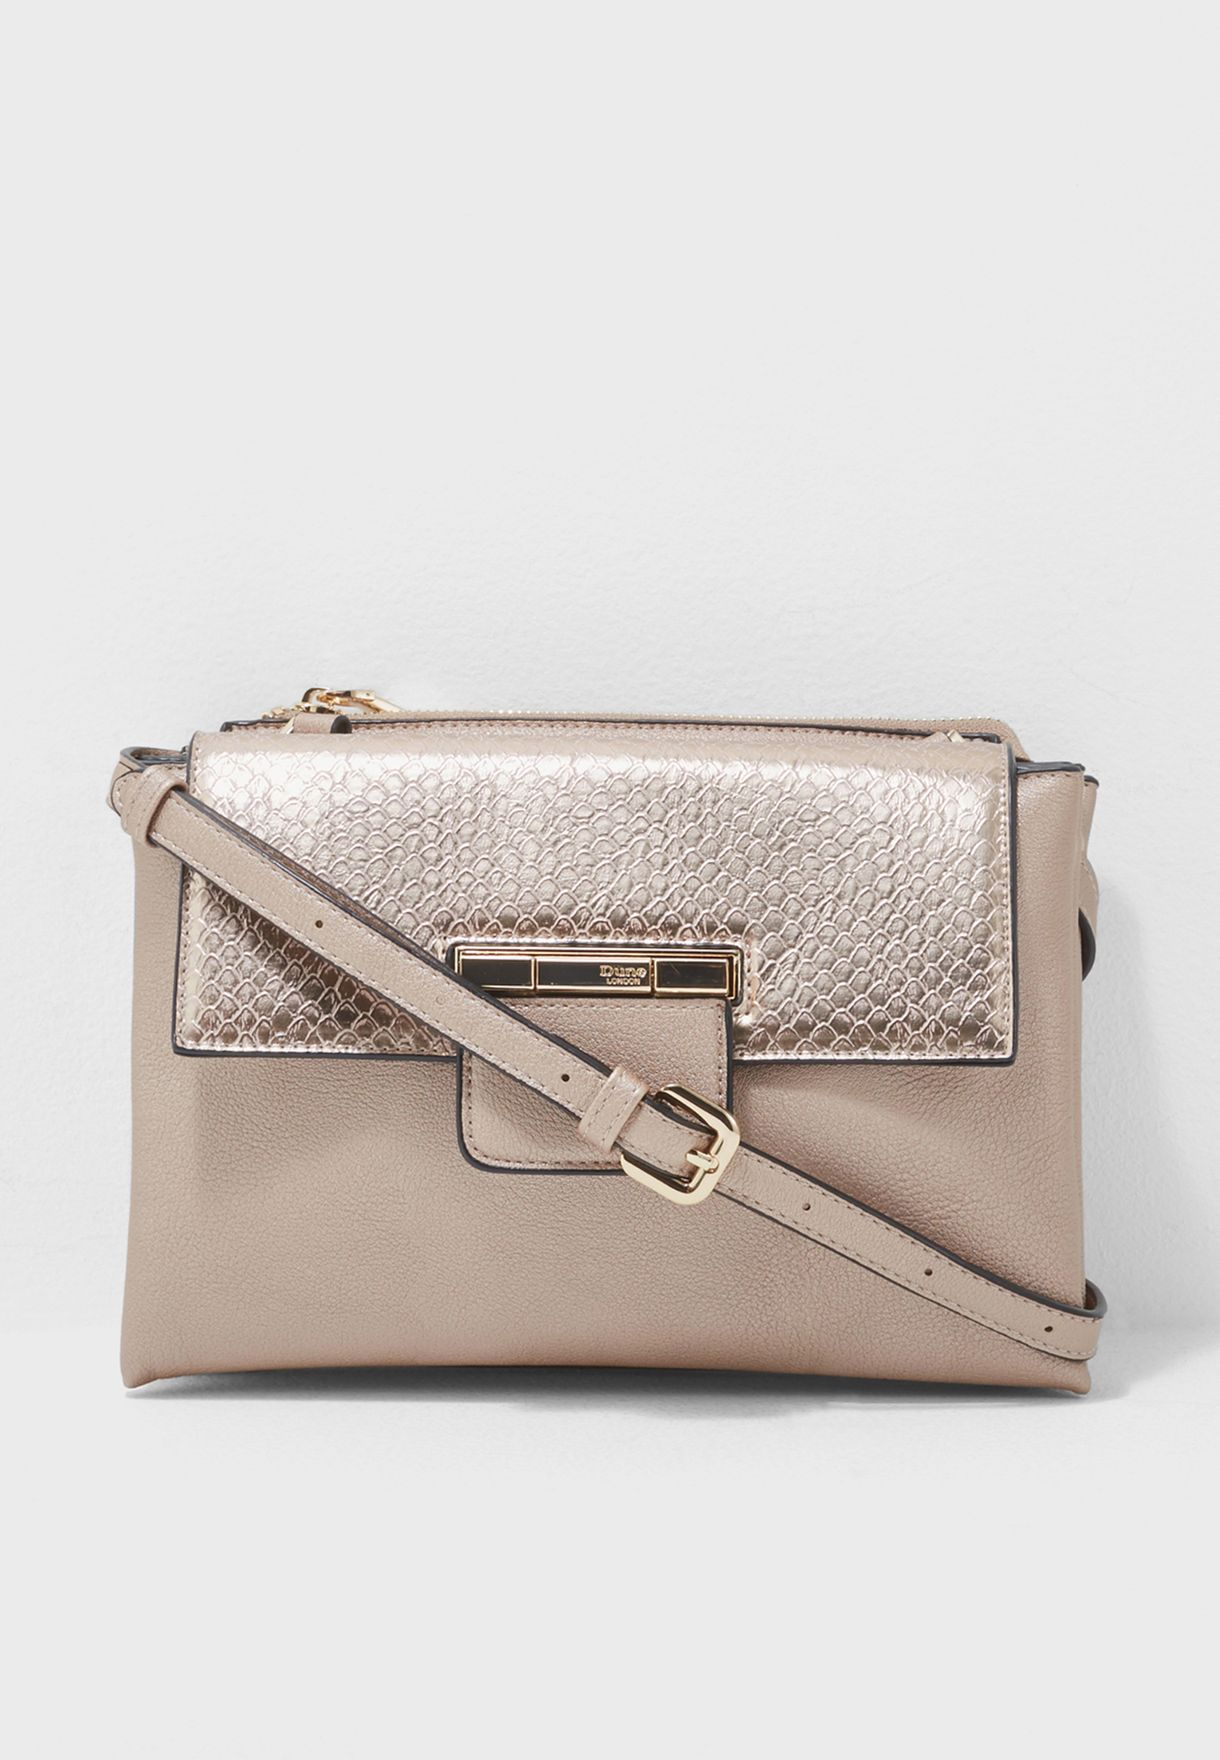 14aea3db81 Shop Dune London gold Dethany Di Crossbody 022500110145596 ...